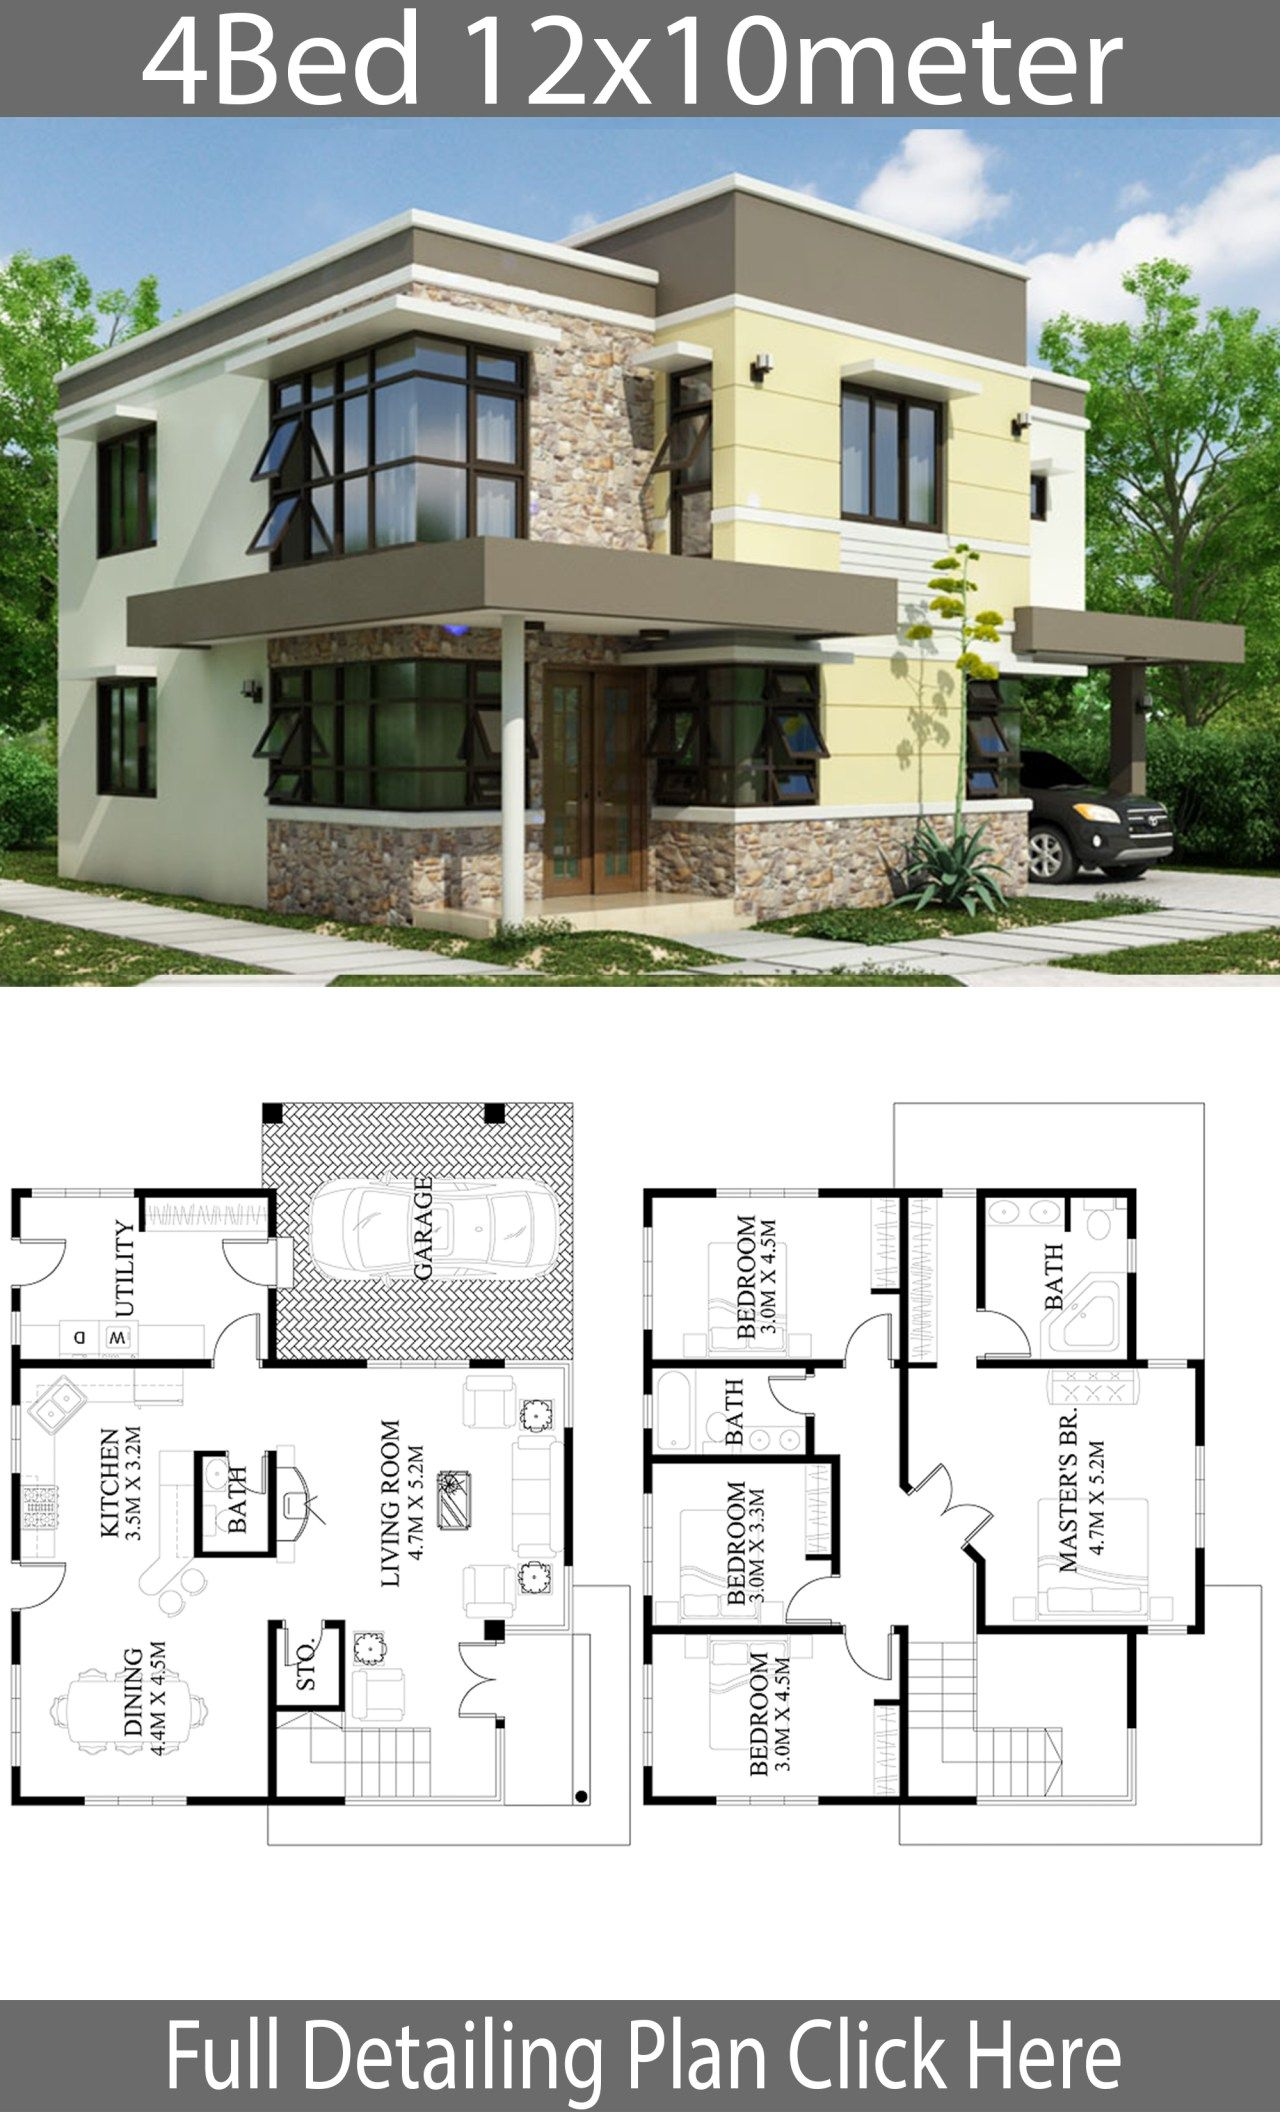 Home Design Plan 12x10m With 4 Bedrooms Home Ideas House Design Model House Plan Home Design Plan